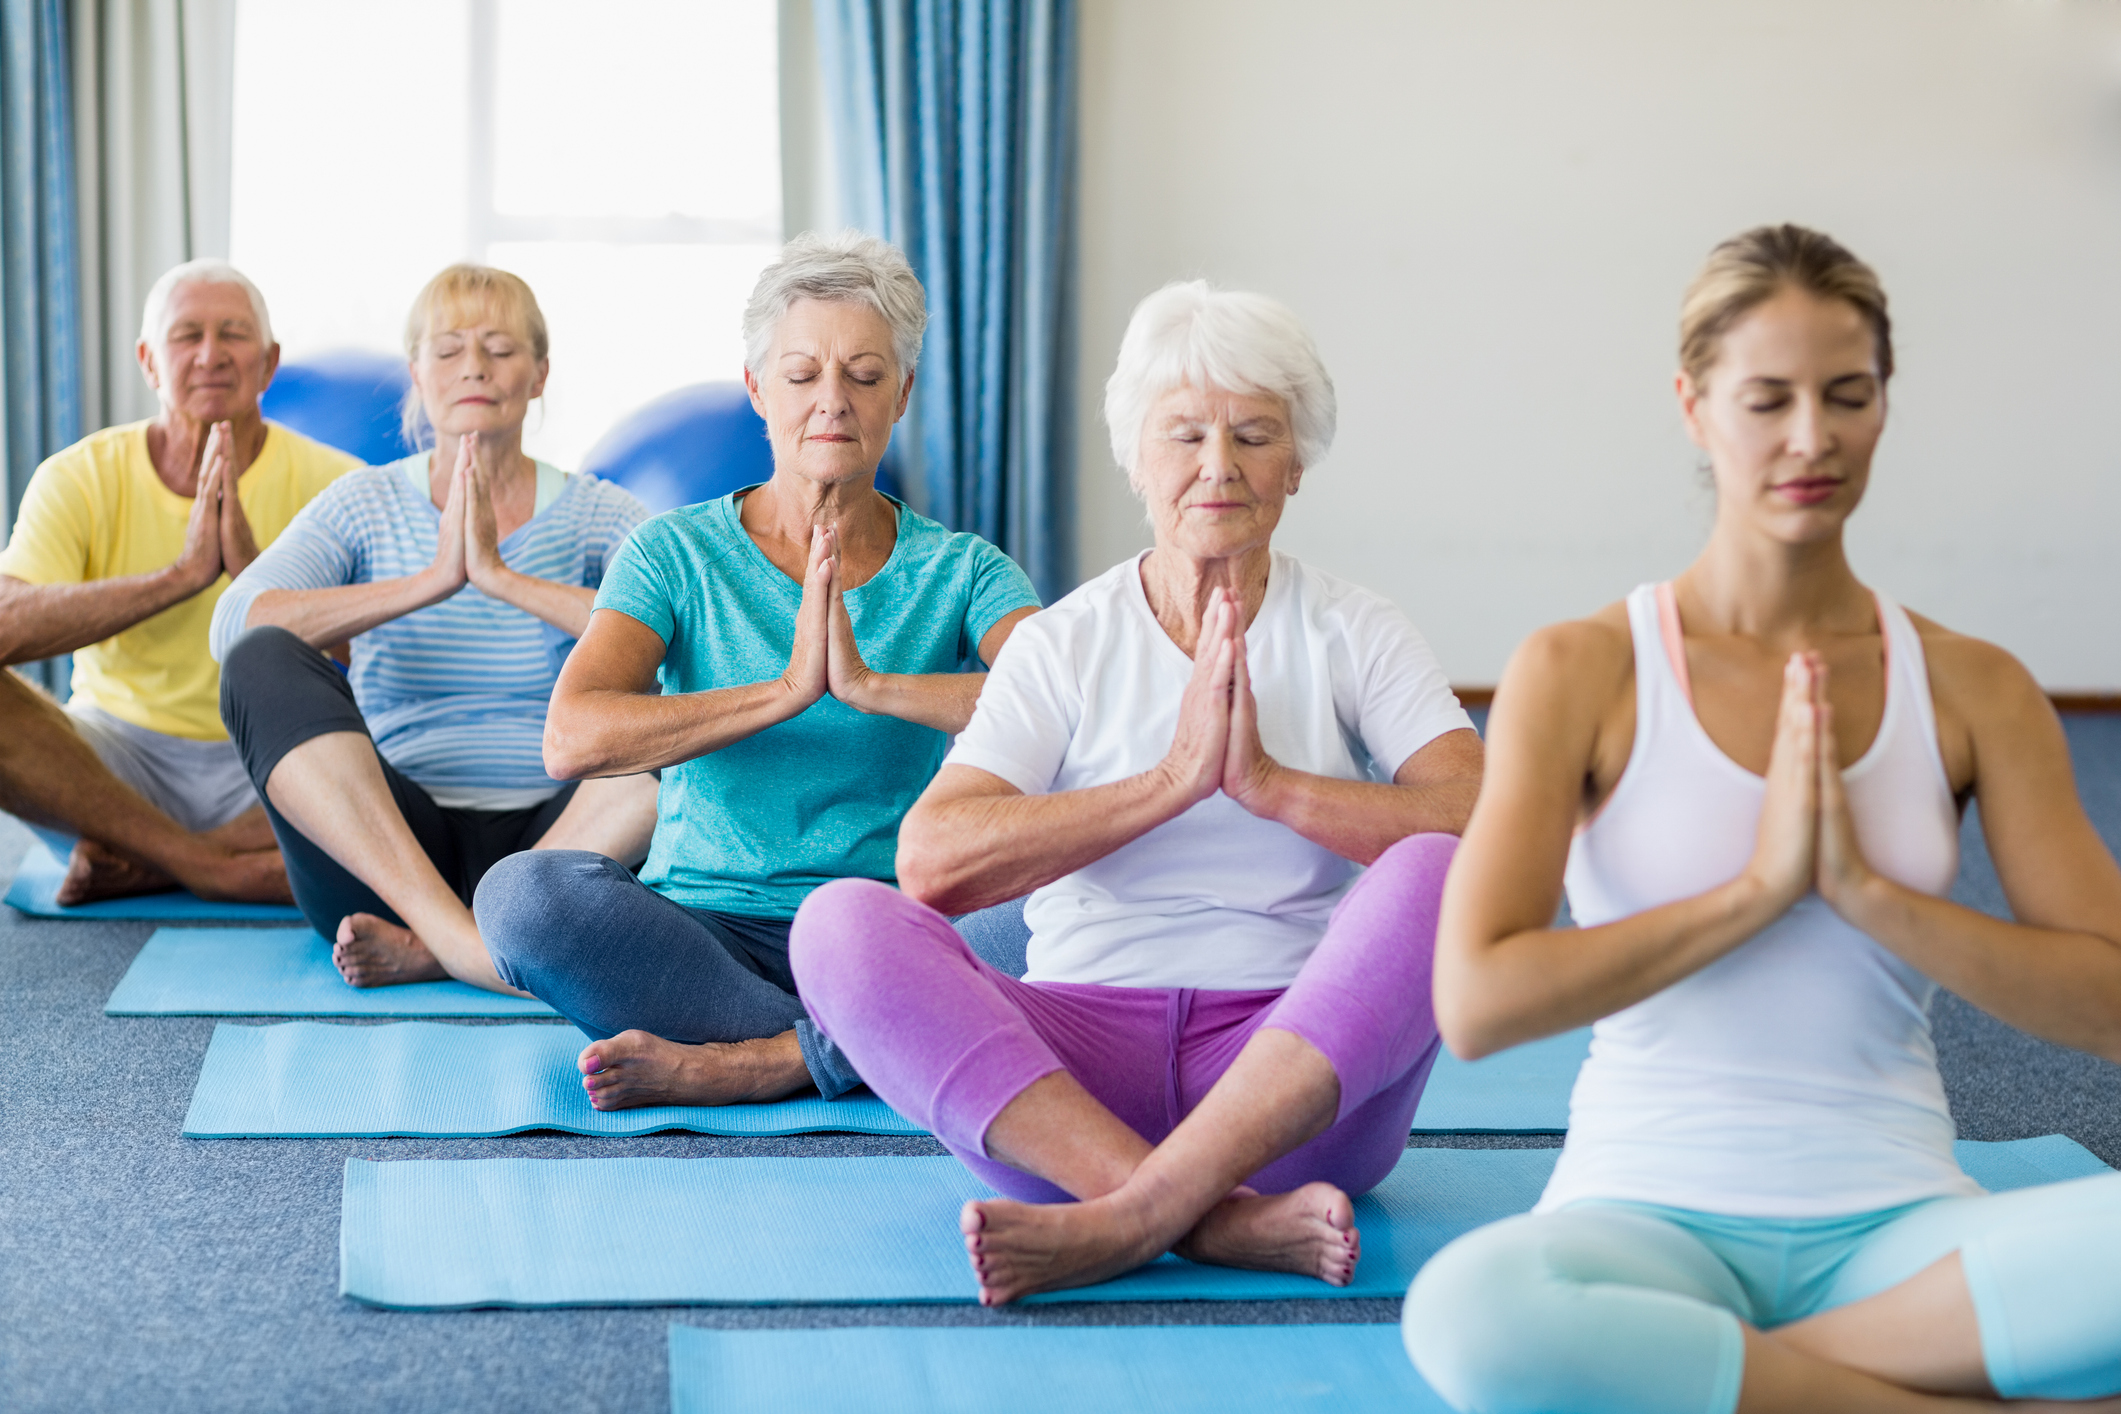 Yoga class, all ages